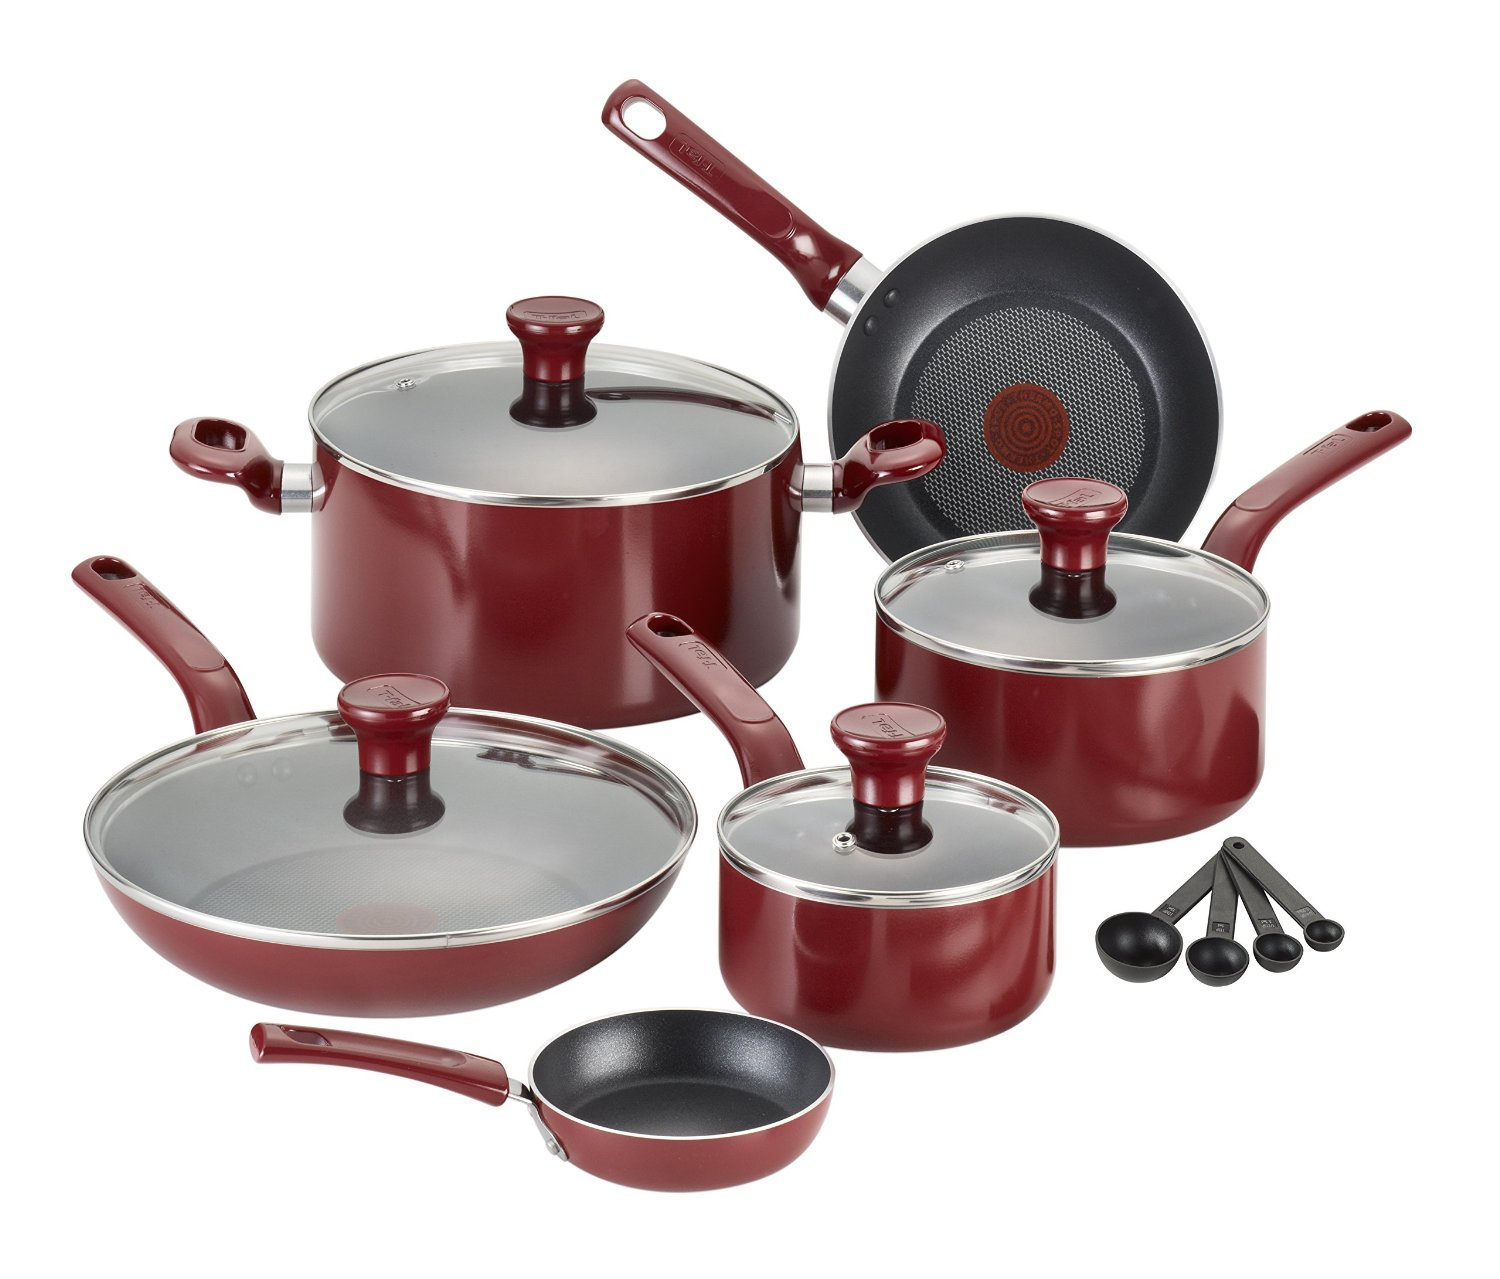 Tefal Pan Set T Fal Excite Nonstick Thermo Spot 14 Piece Cookware Set